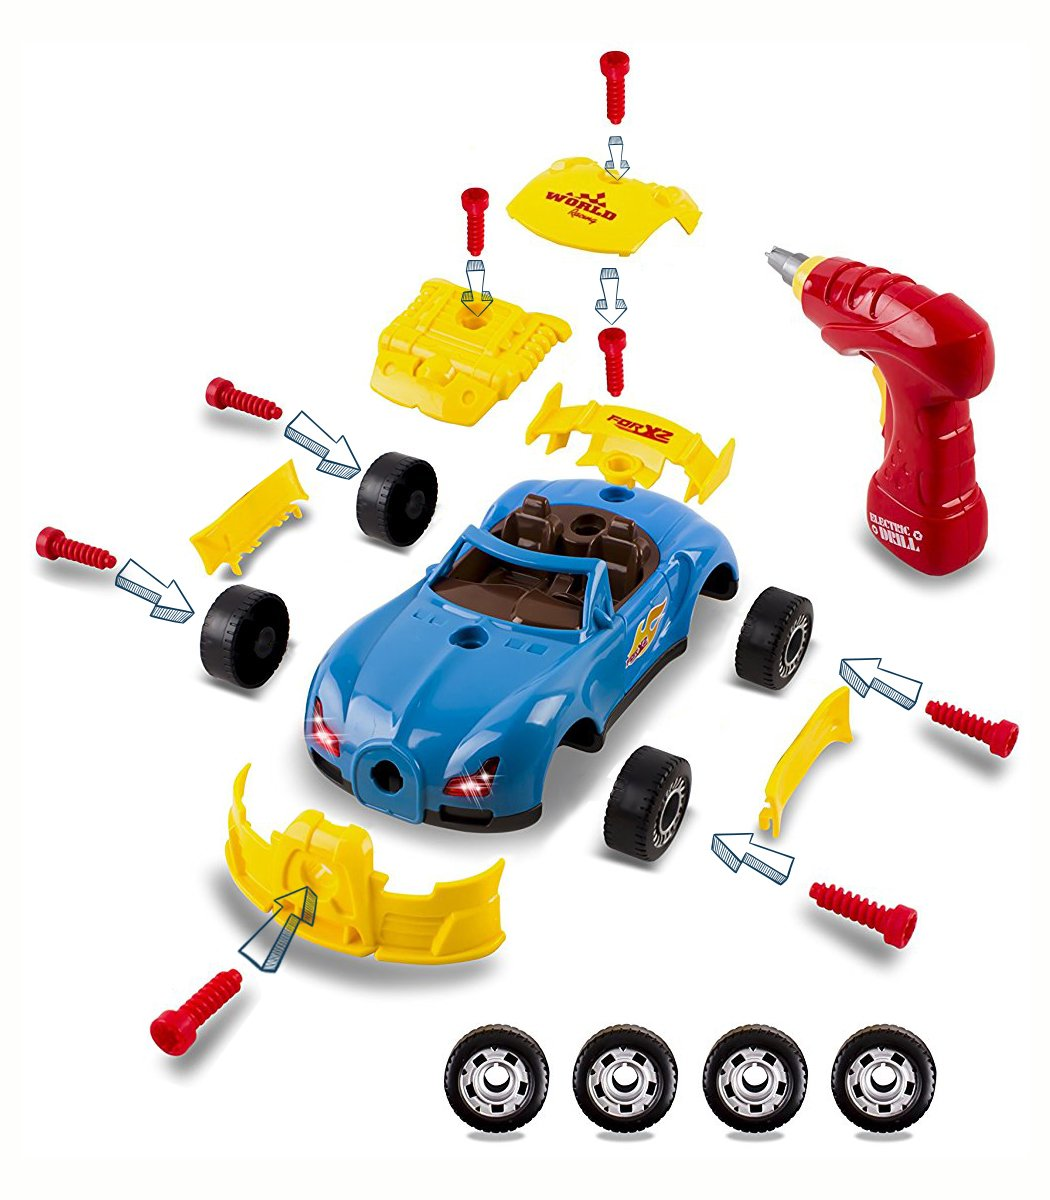 CoolToys Custom Take-A-Part Car Playset – Sports Car with Electric Play Drill and 30 Car Modification Pieces – Motion Activated Lights and Sounds by CoolToys (Image #3)